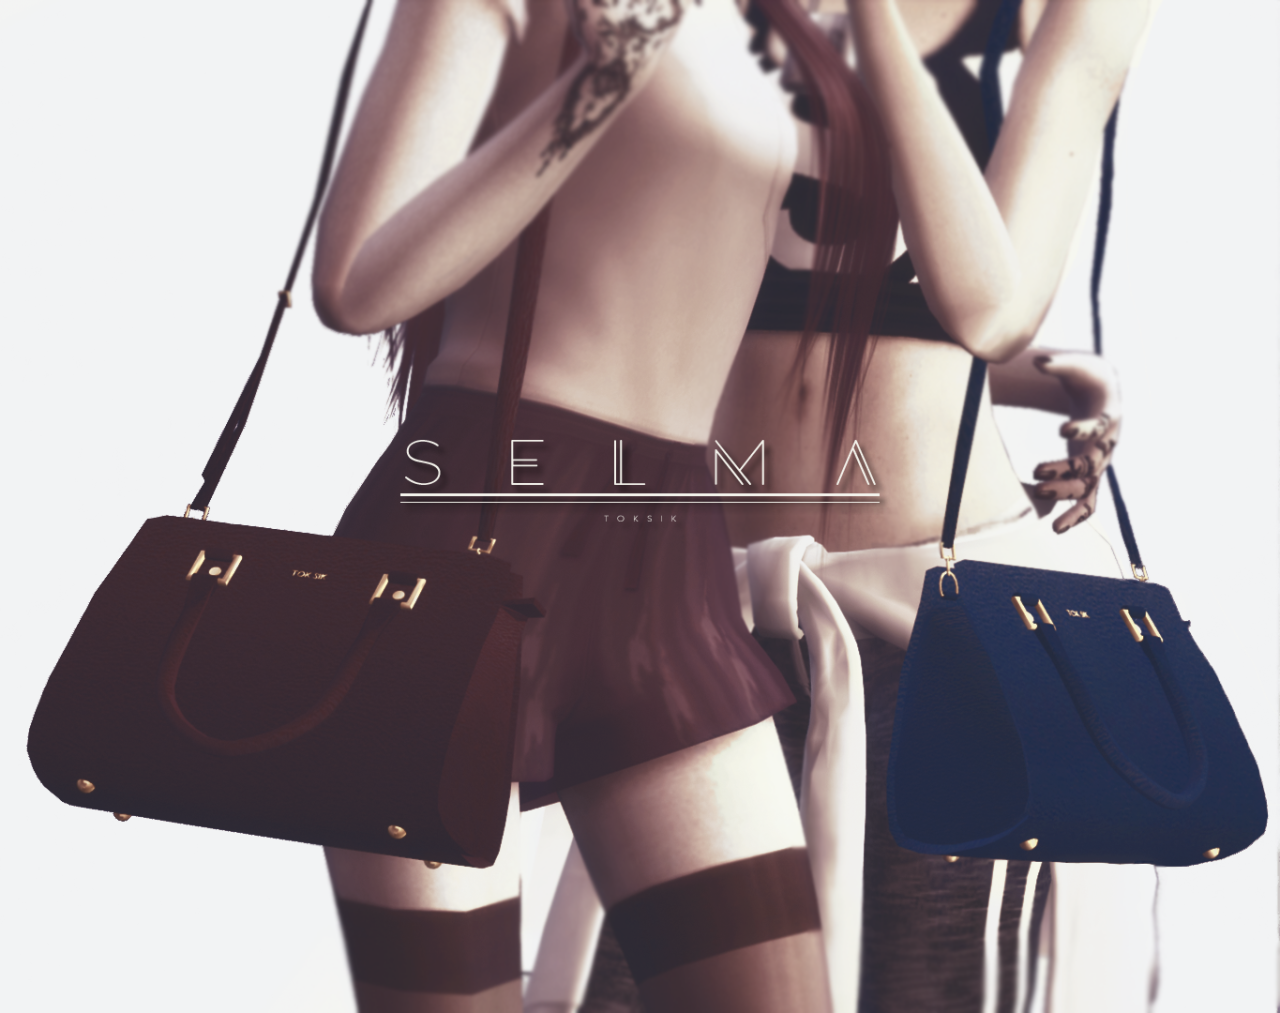 Selma Handbag by TokSik